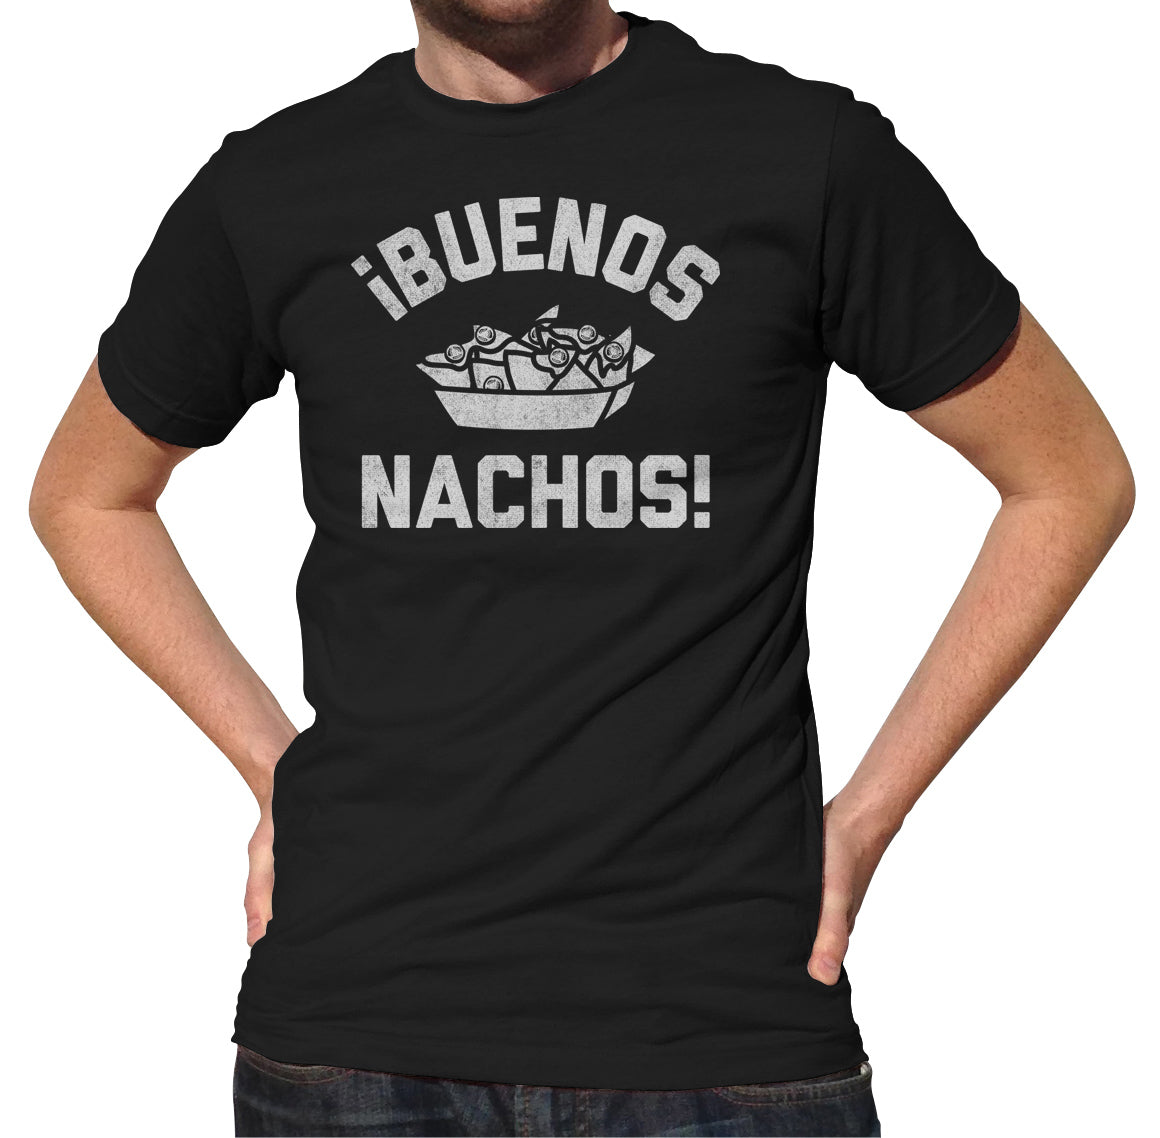 Men's Buenos Nachos T-Shirt